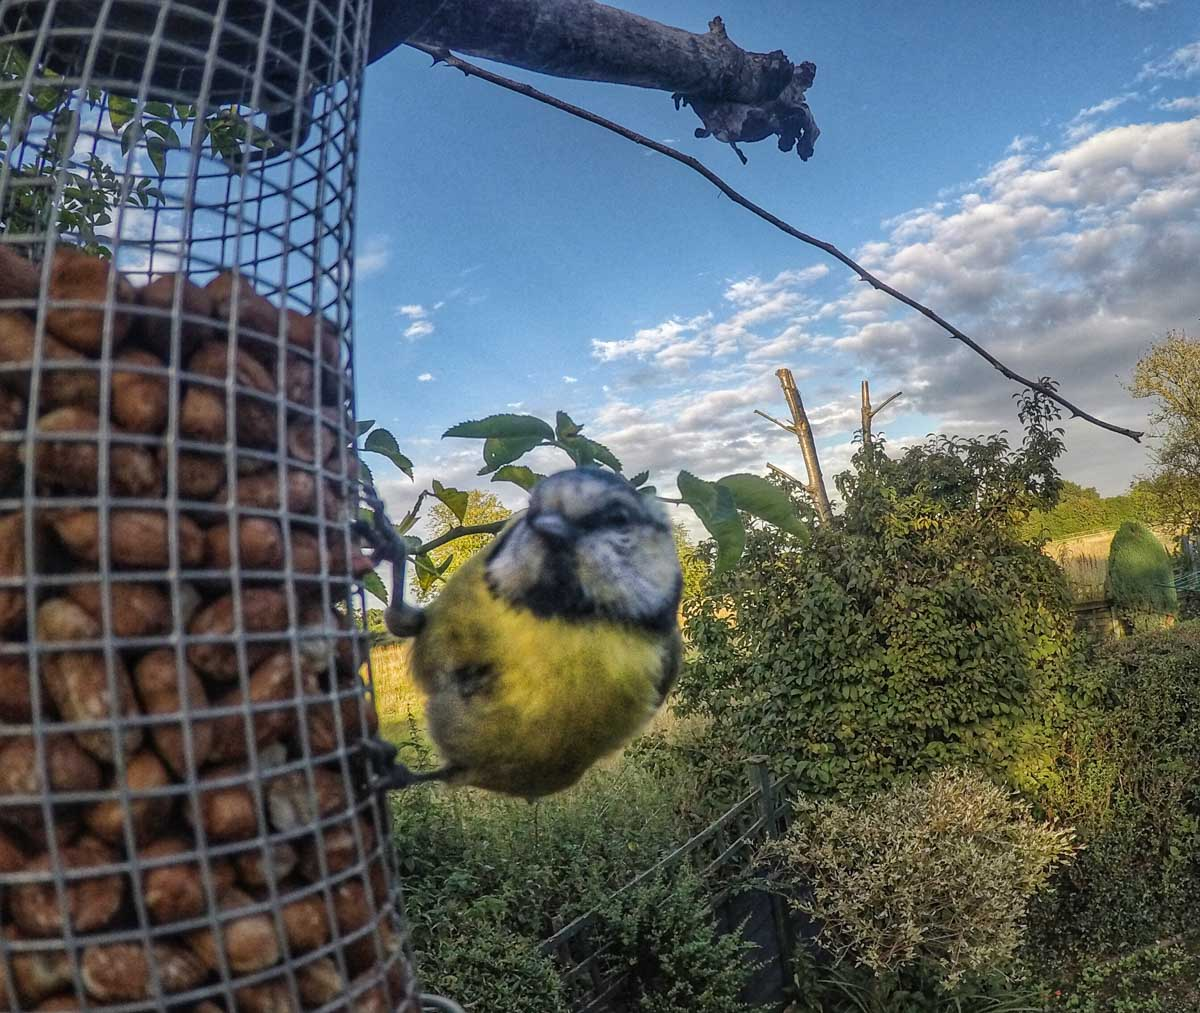 fun-animals-9 More GoPro Animals On My Travels and Walks